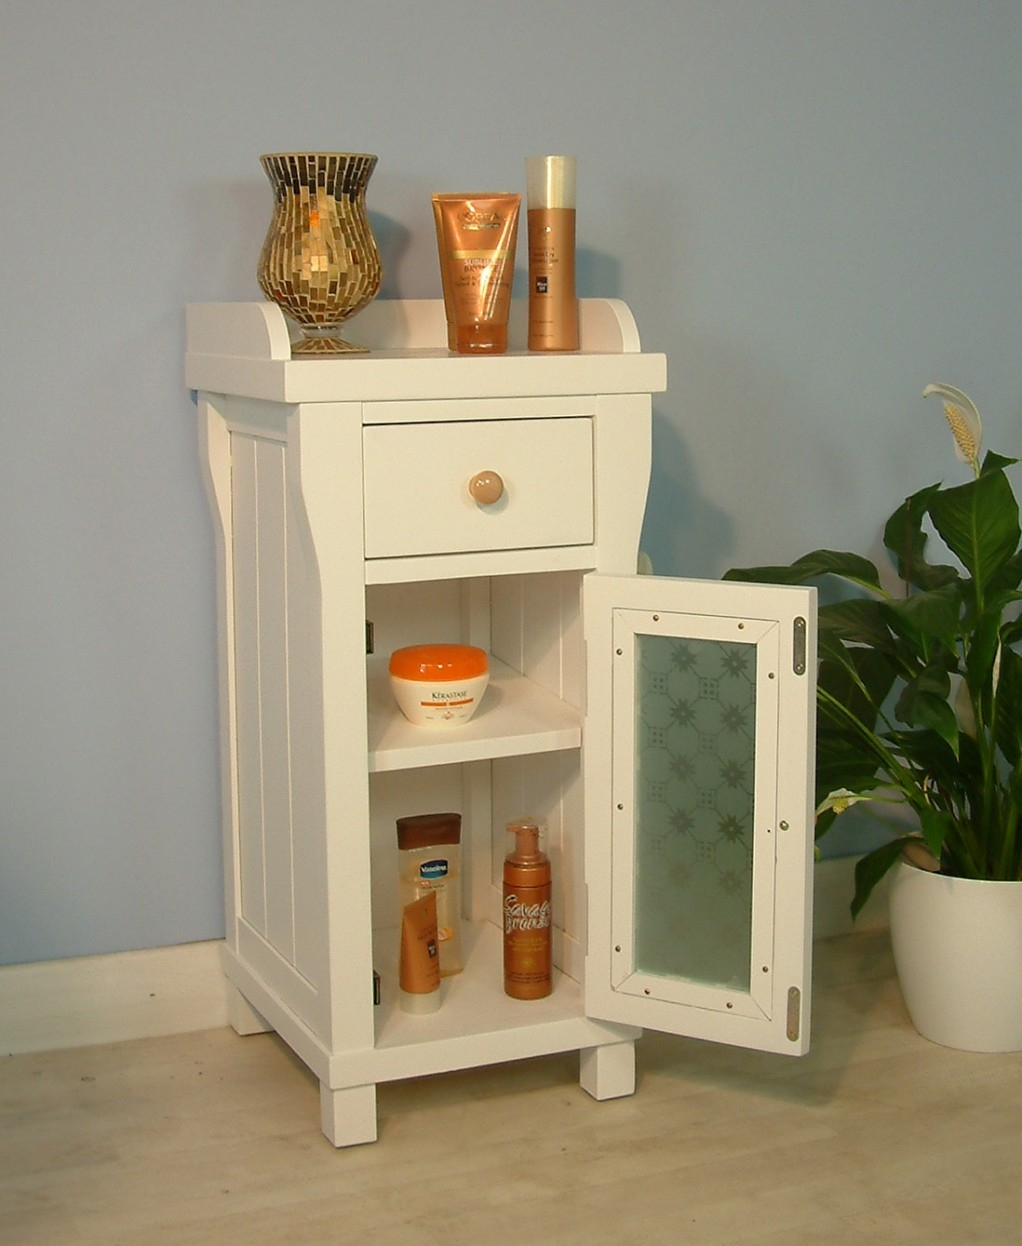 Small Standing Cabinet For Bathroom